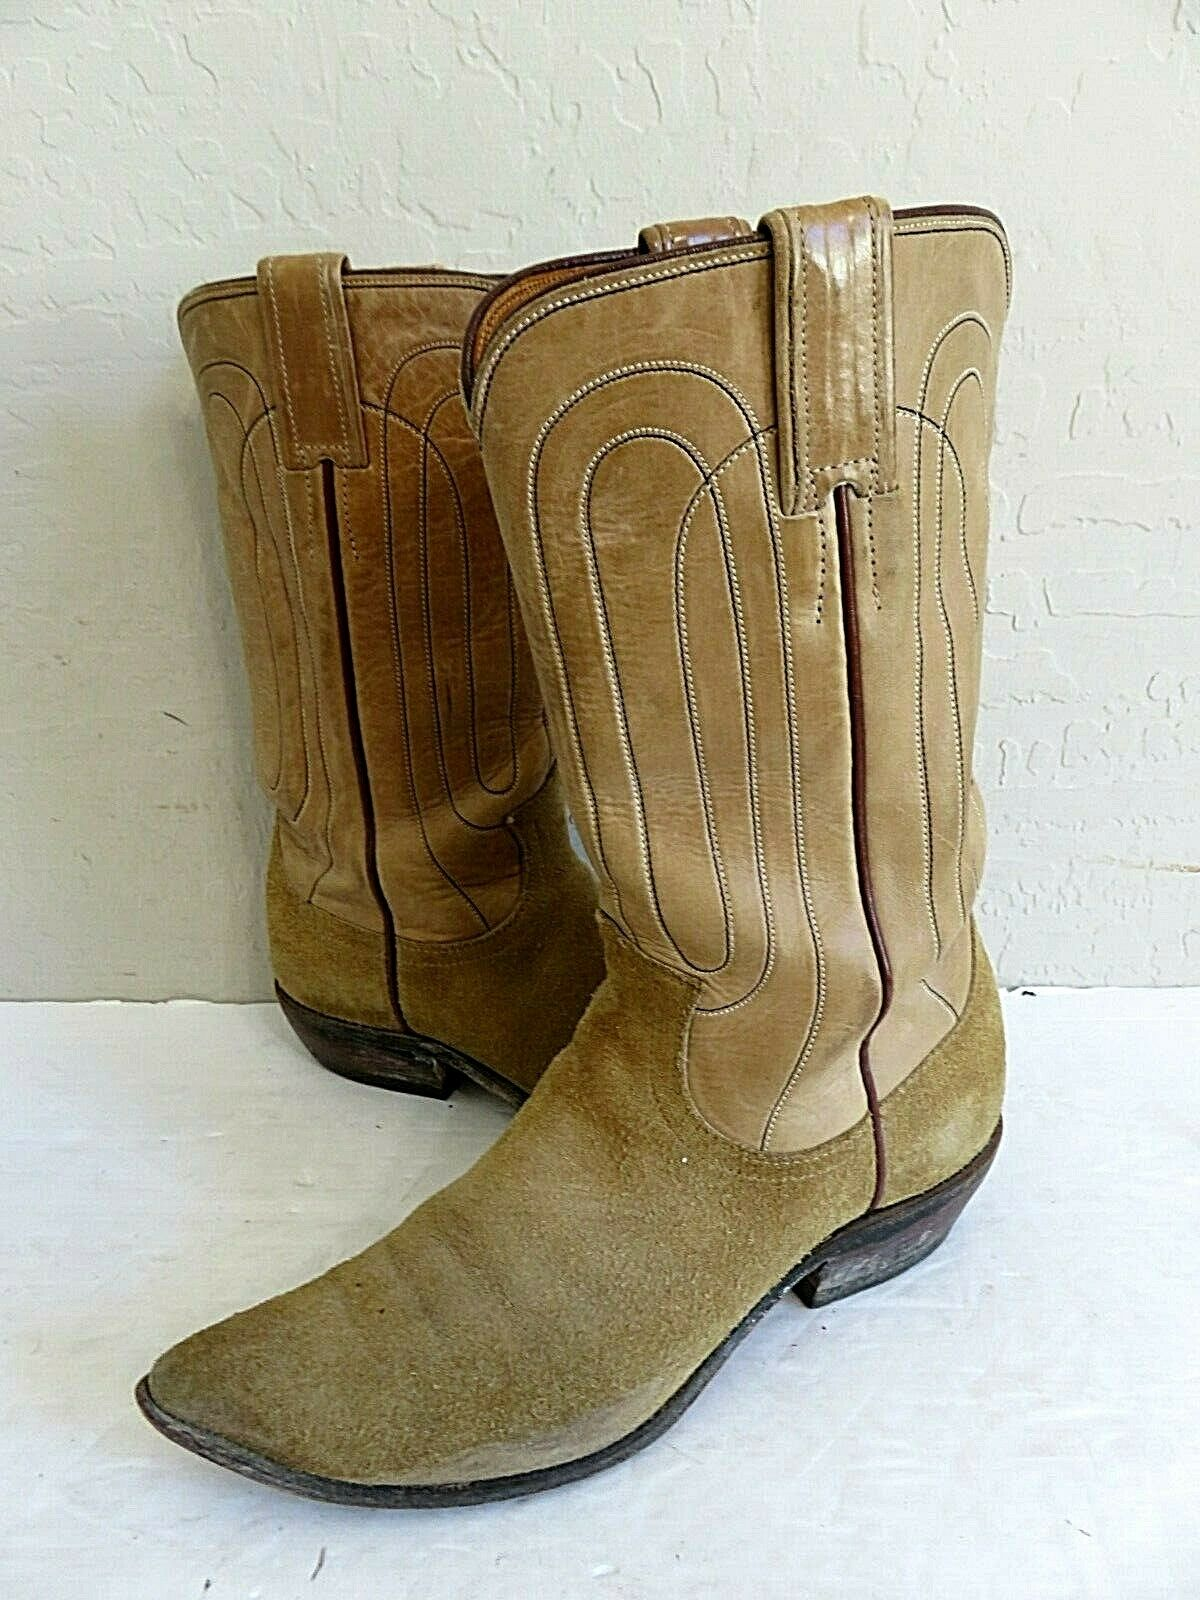 Justin Cowboy Boots Beige Suede Leather Leather Womens 6.5A